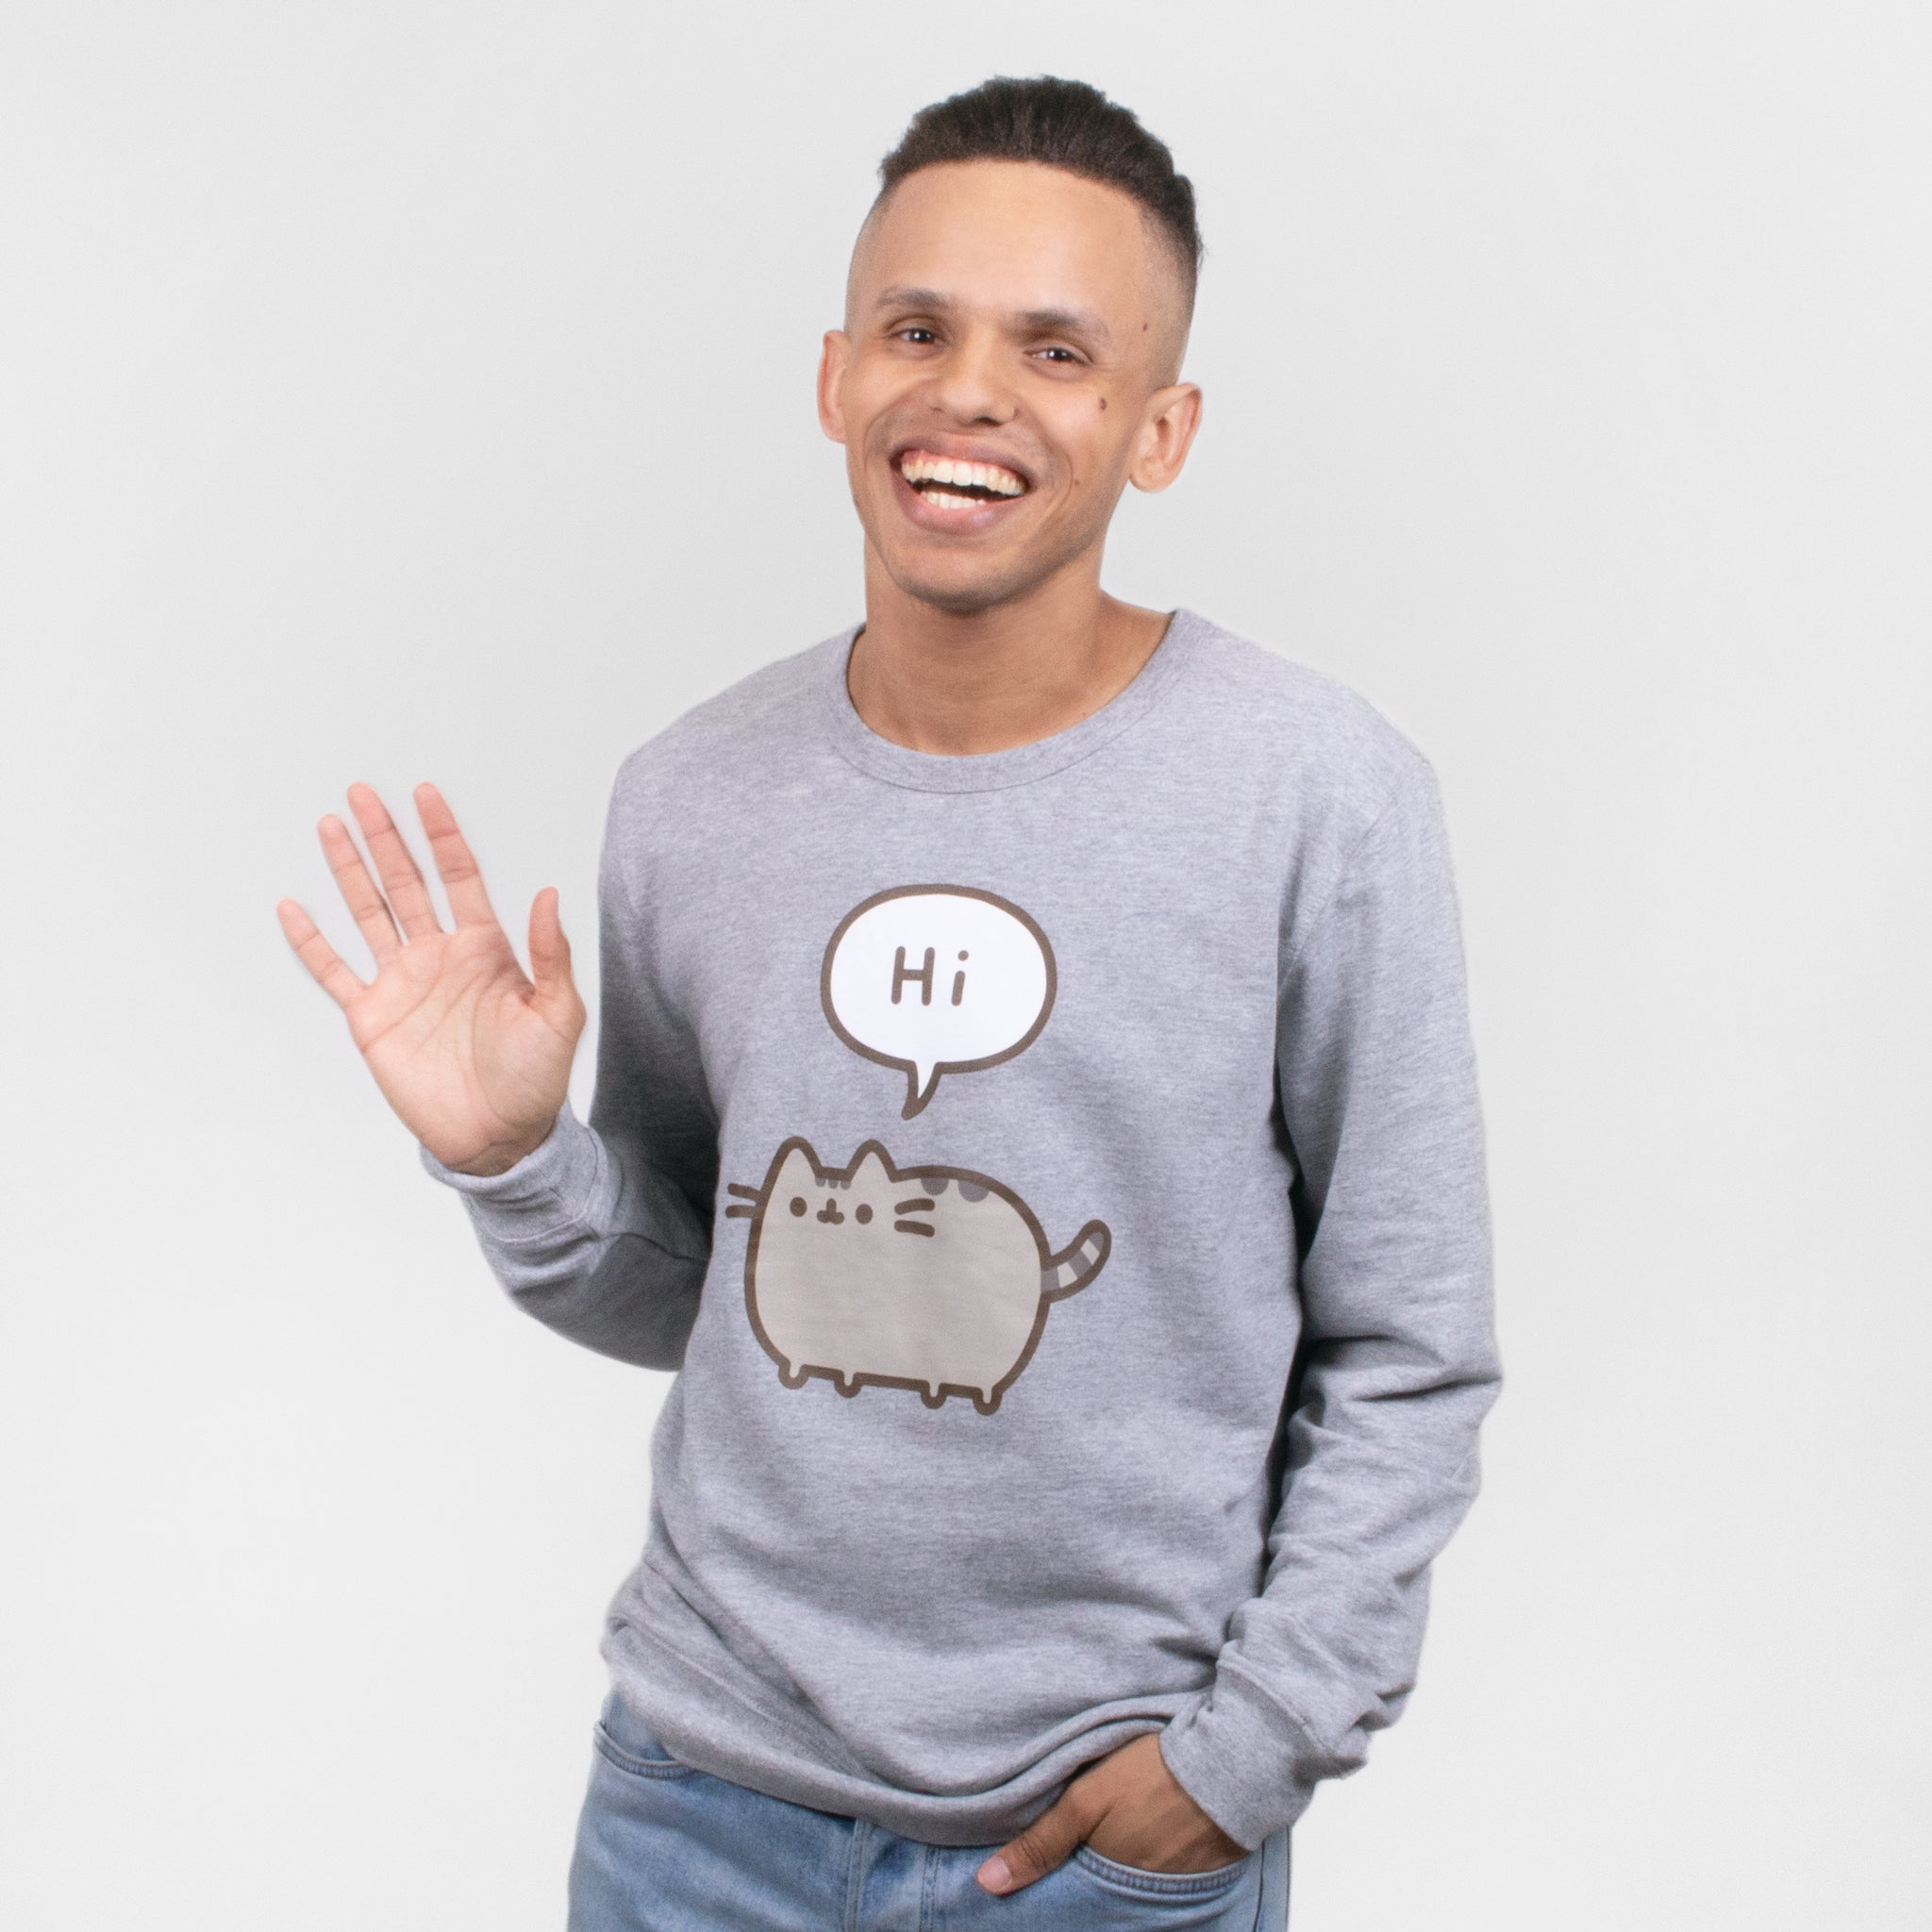 men pusheen hi bye front apparel sweater graphic longsleeve shirt cute cat culturefly